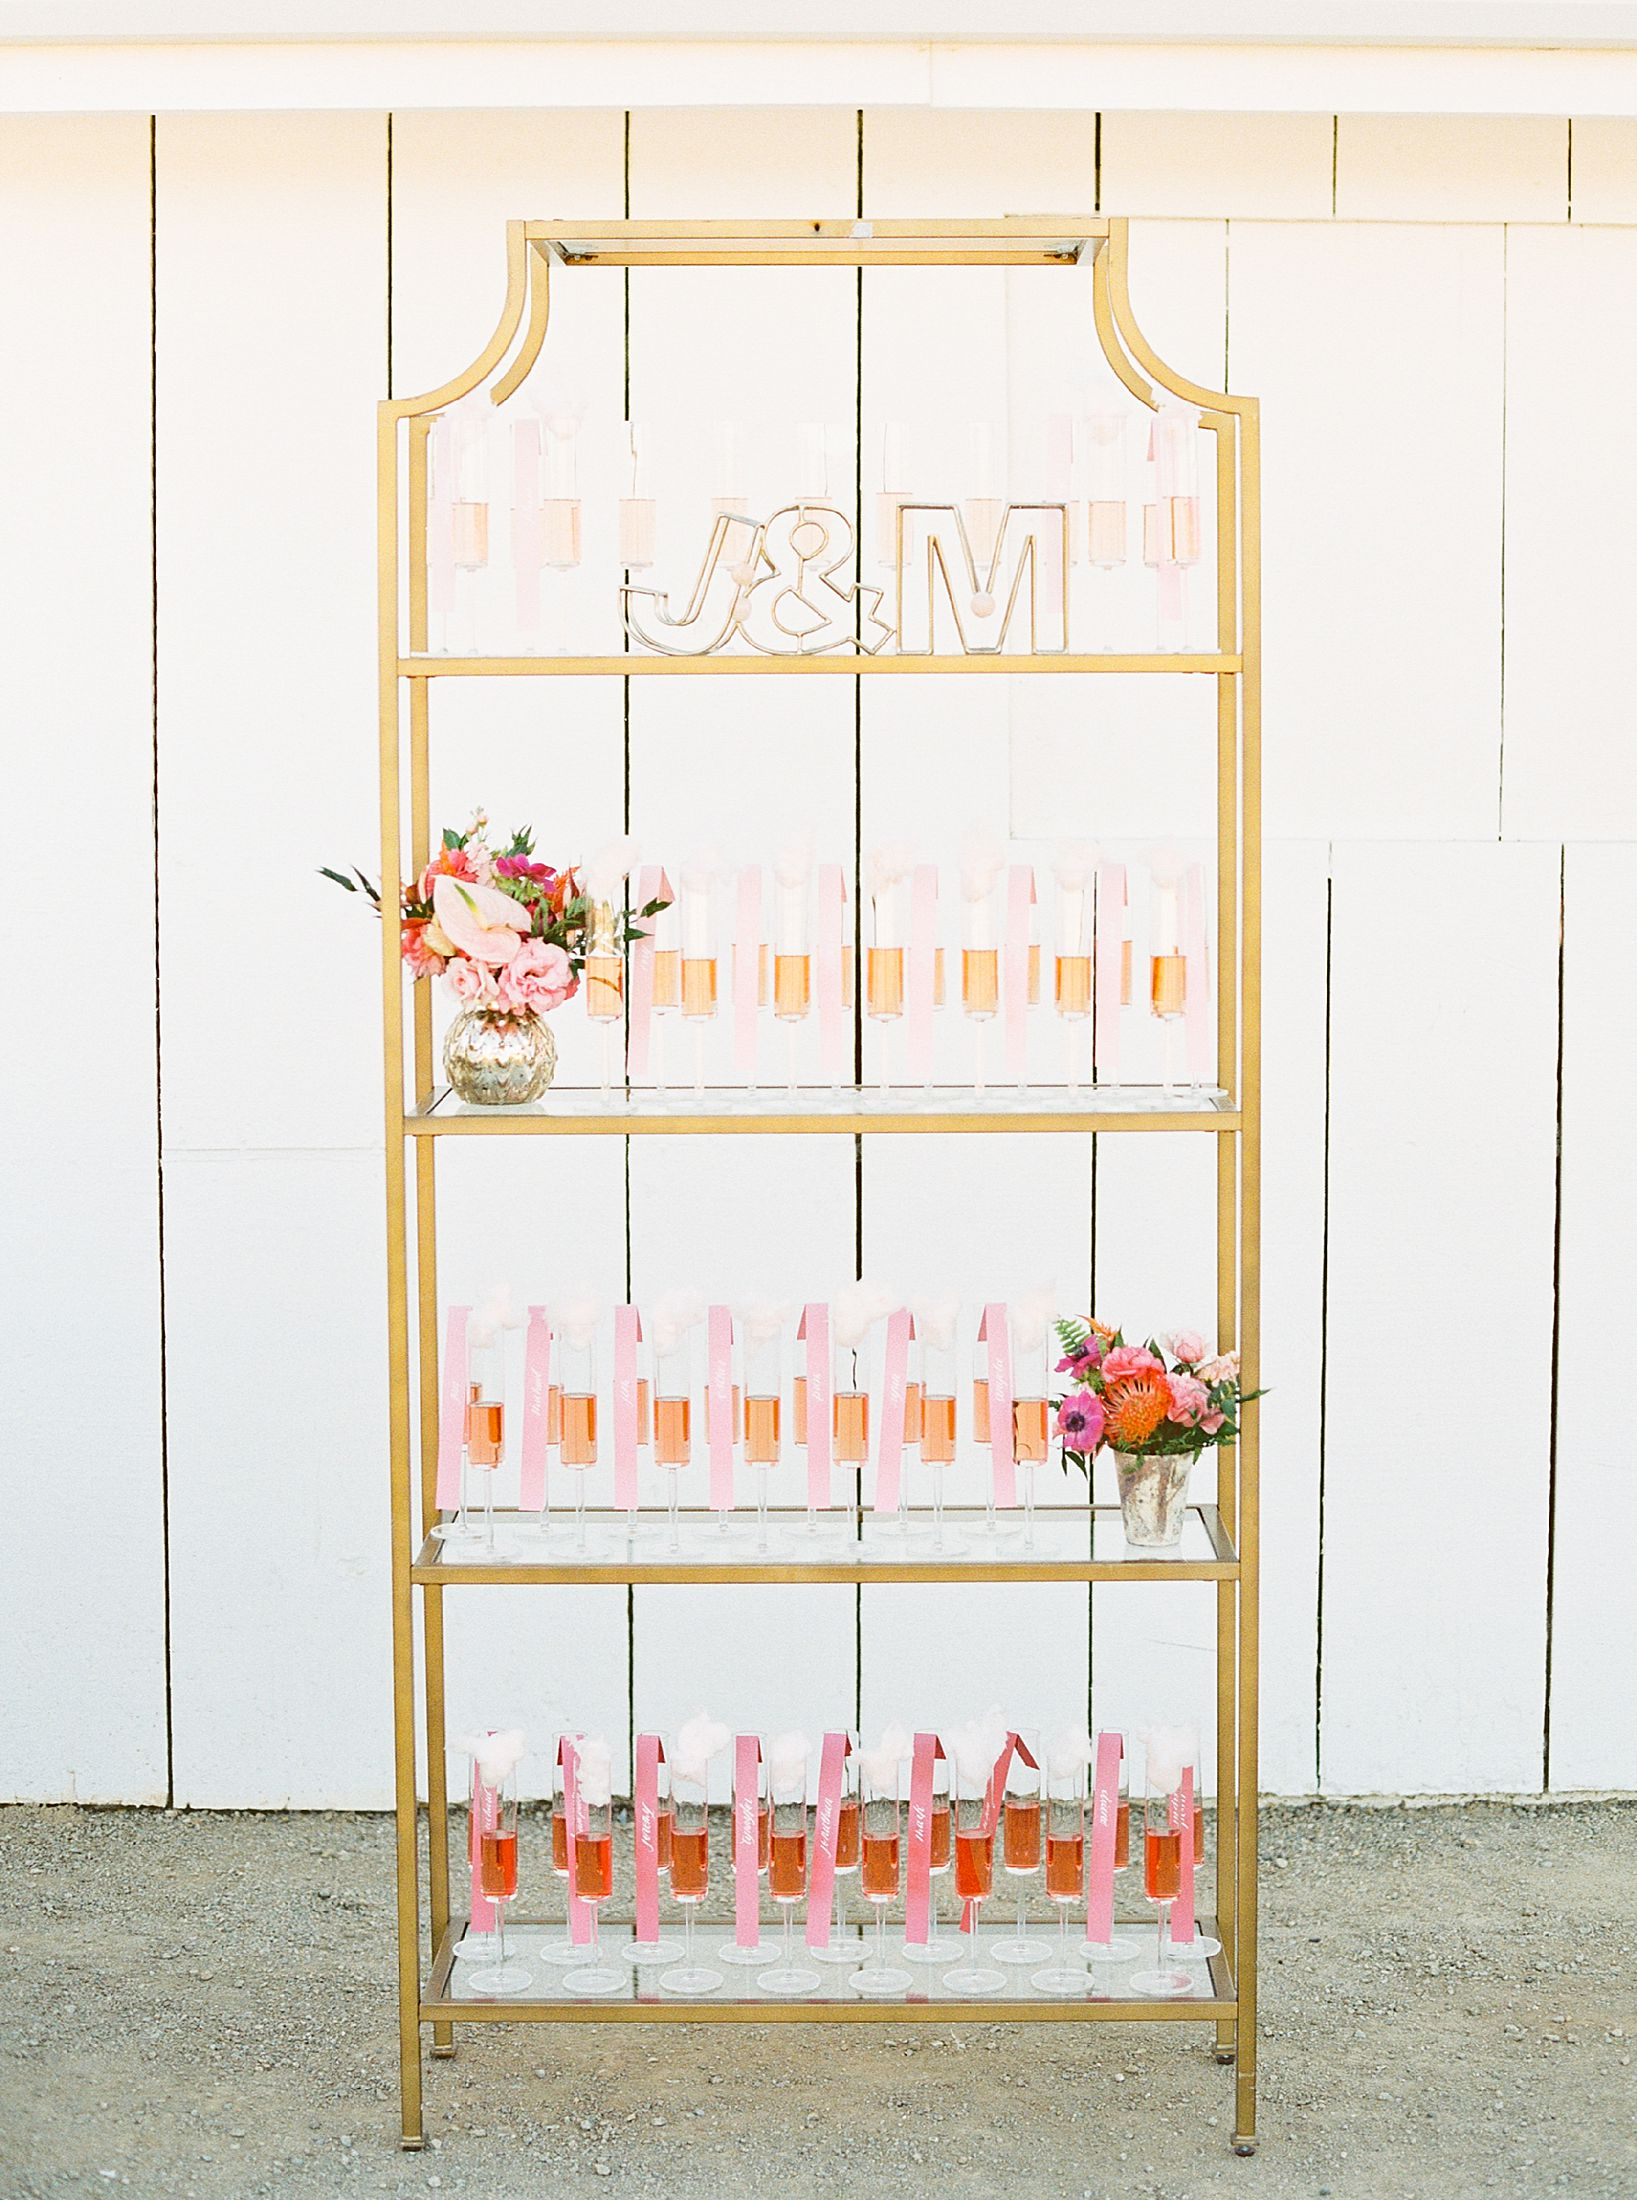 White Barn Edna Valley Wedding Inspiration - San Luis Obispo Wedding - Featured on Green Wedding Shoes - Ashley Baumgartner - FM Events SLO - SLO Wedding Photographer_0032.jpg